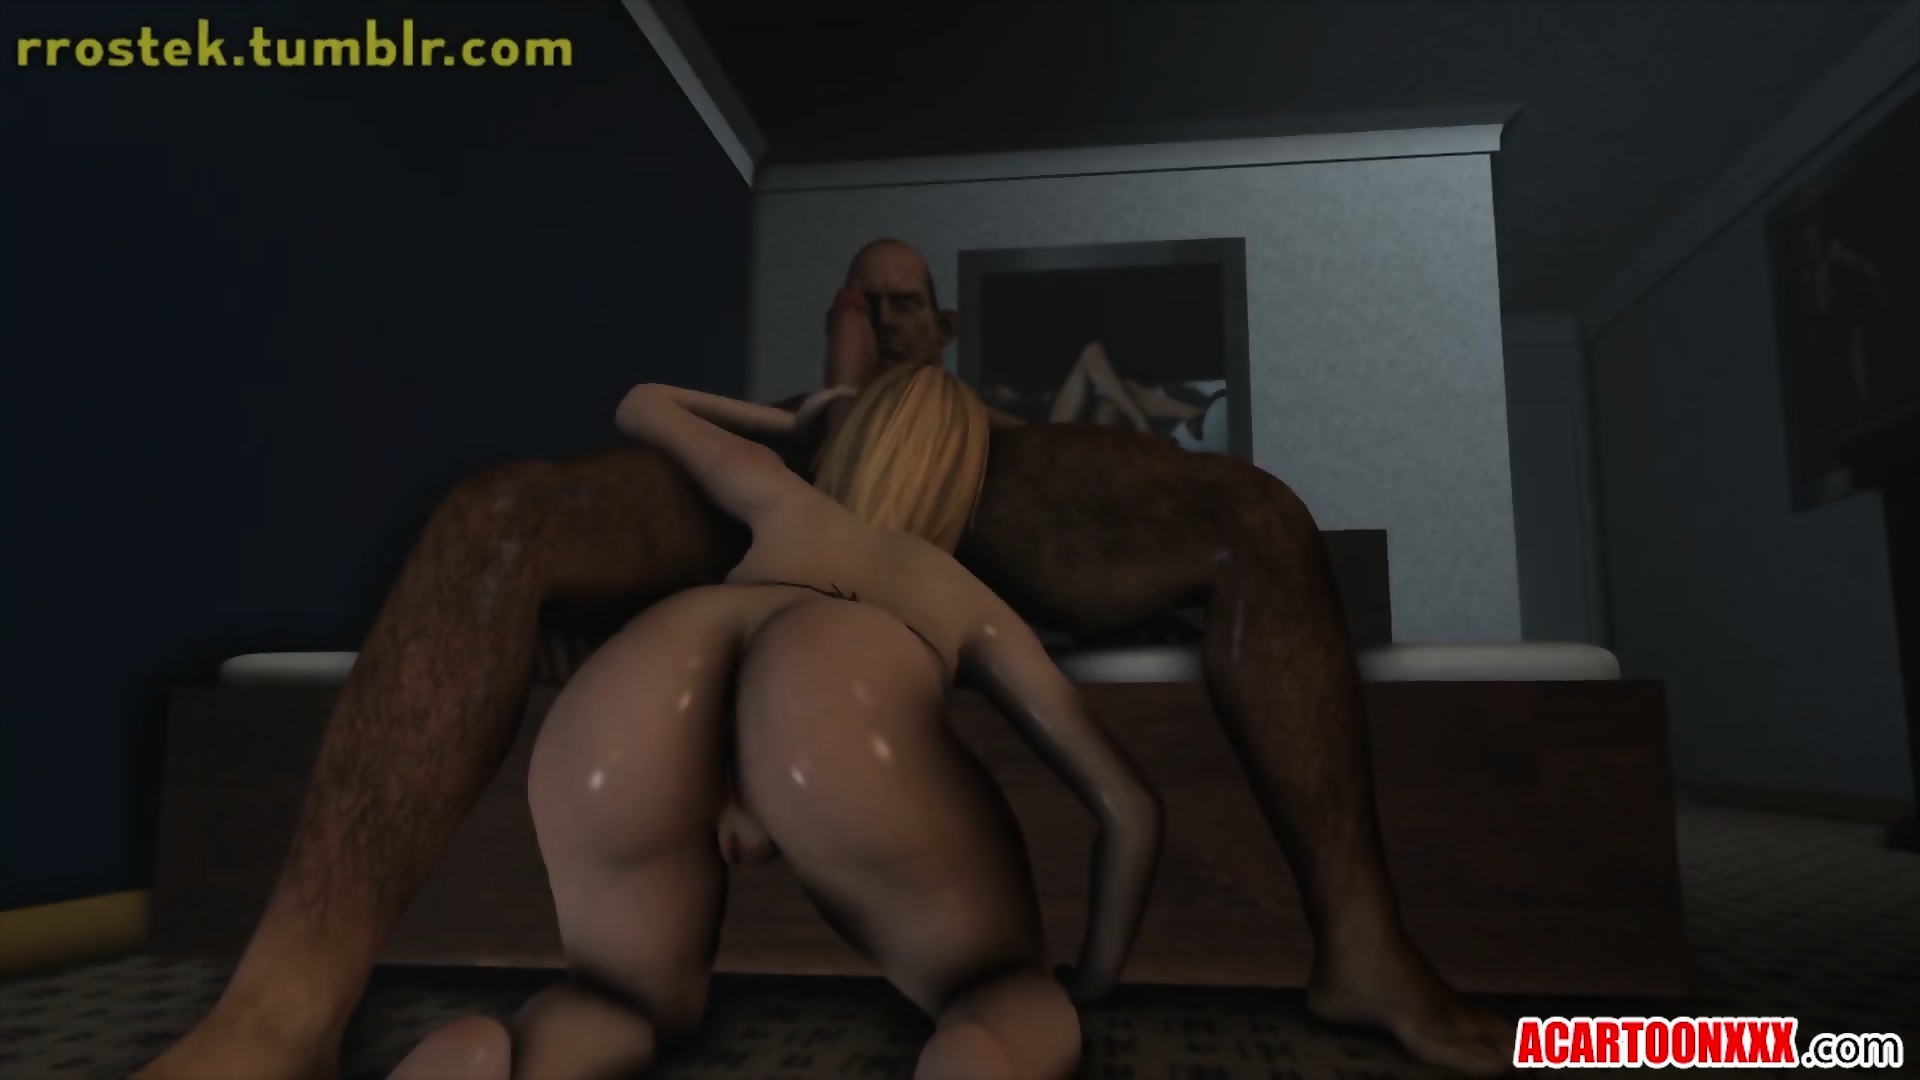 3D Big Tits Tumblr hardcore action for big tits and big ass 3d heroes - eporner